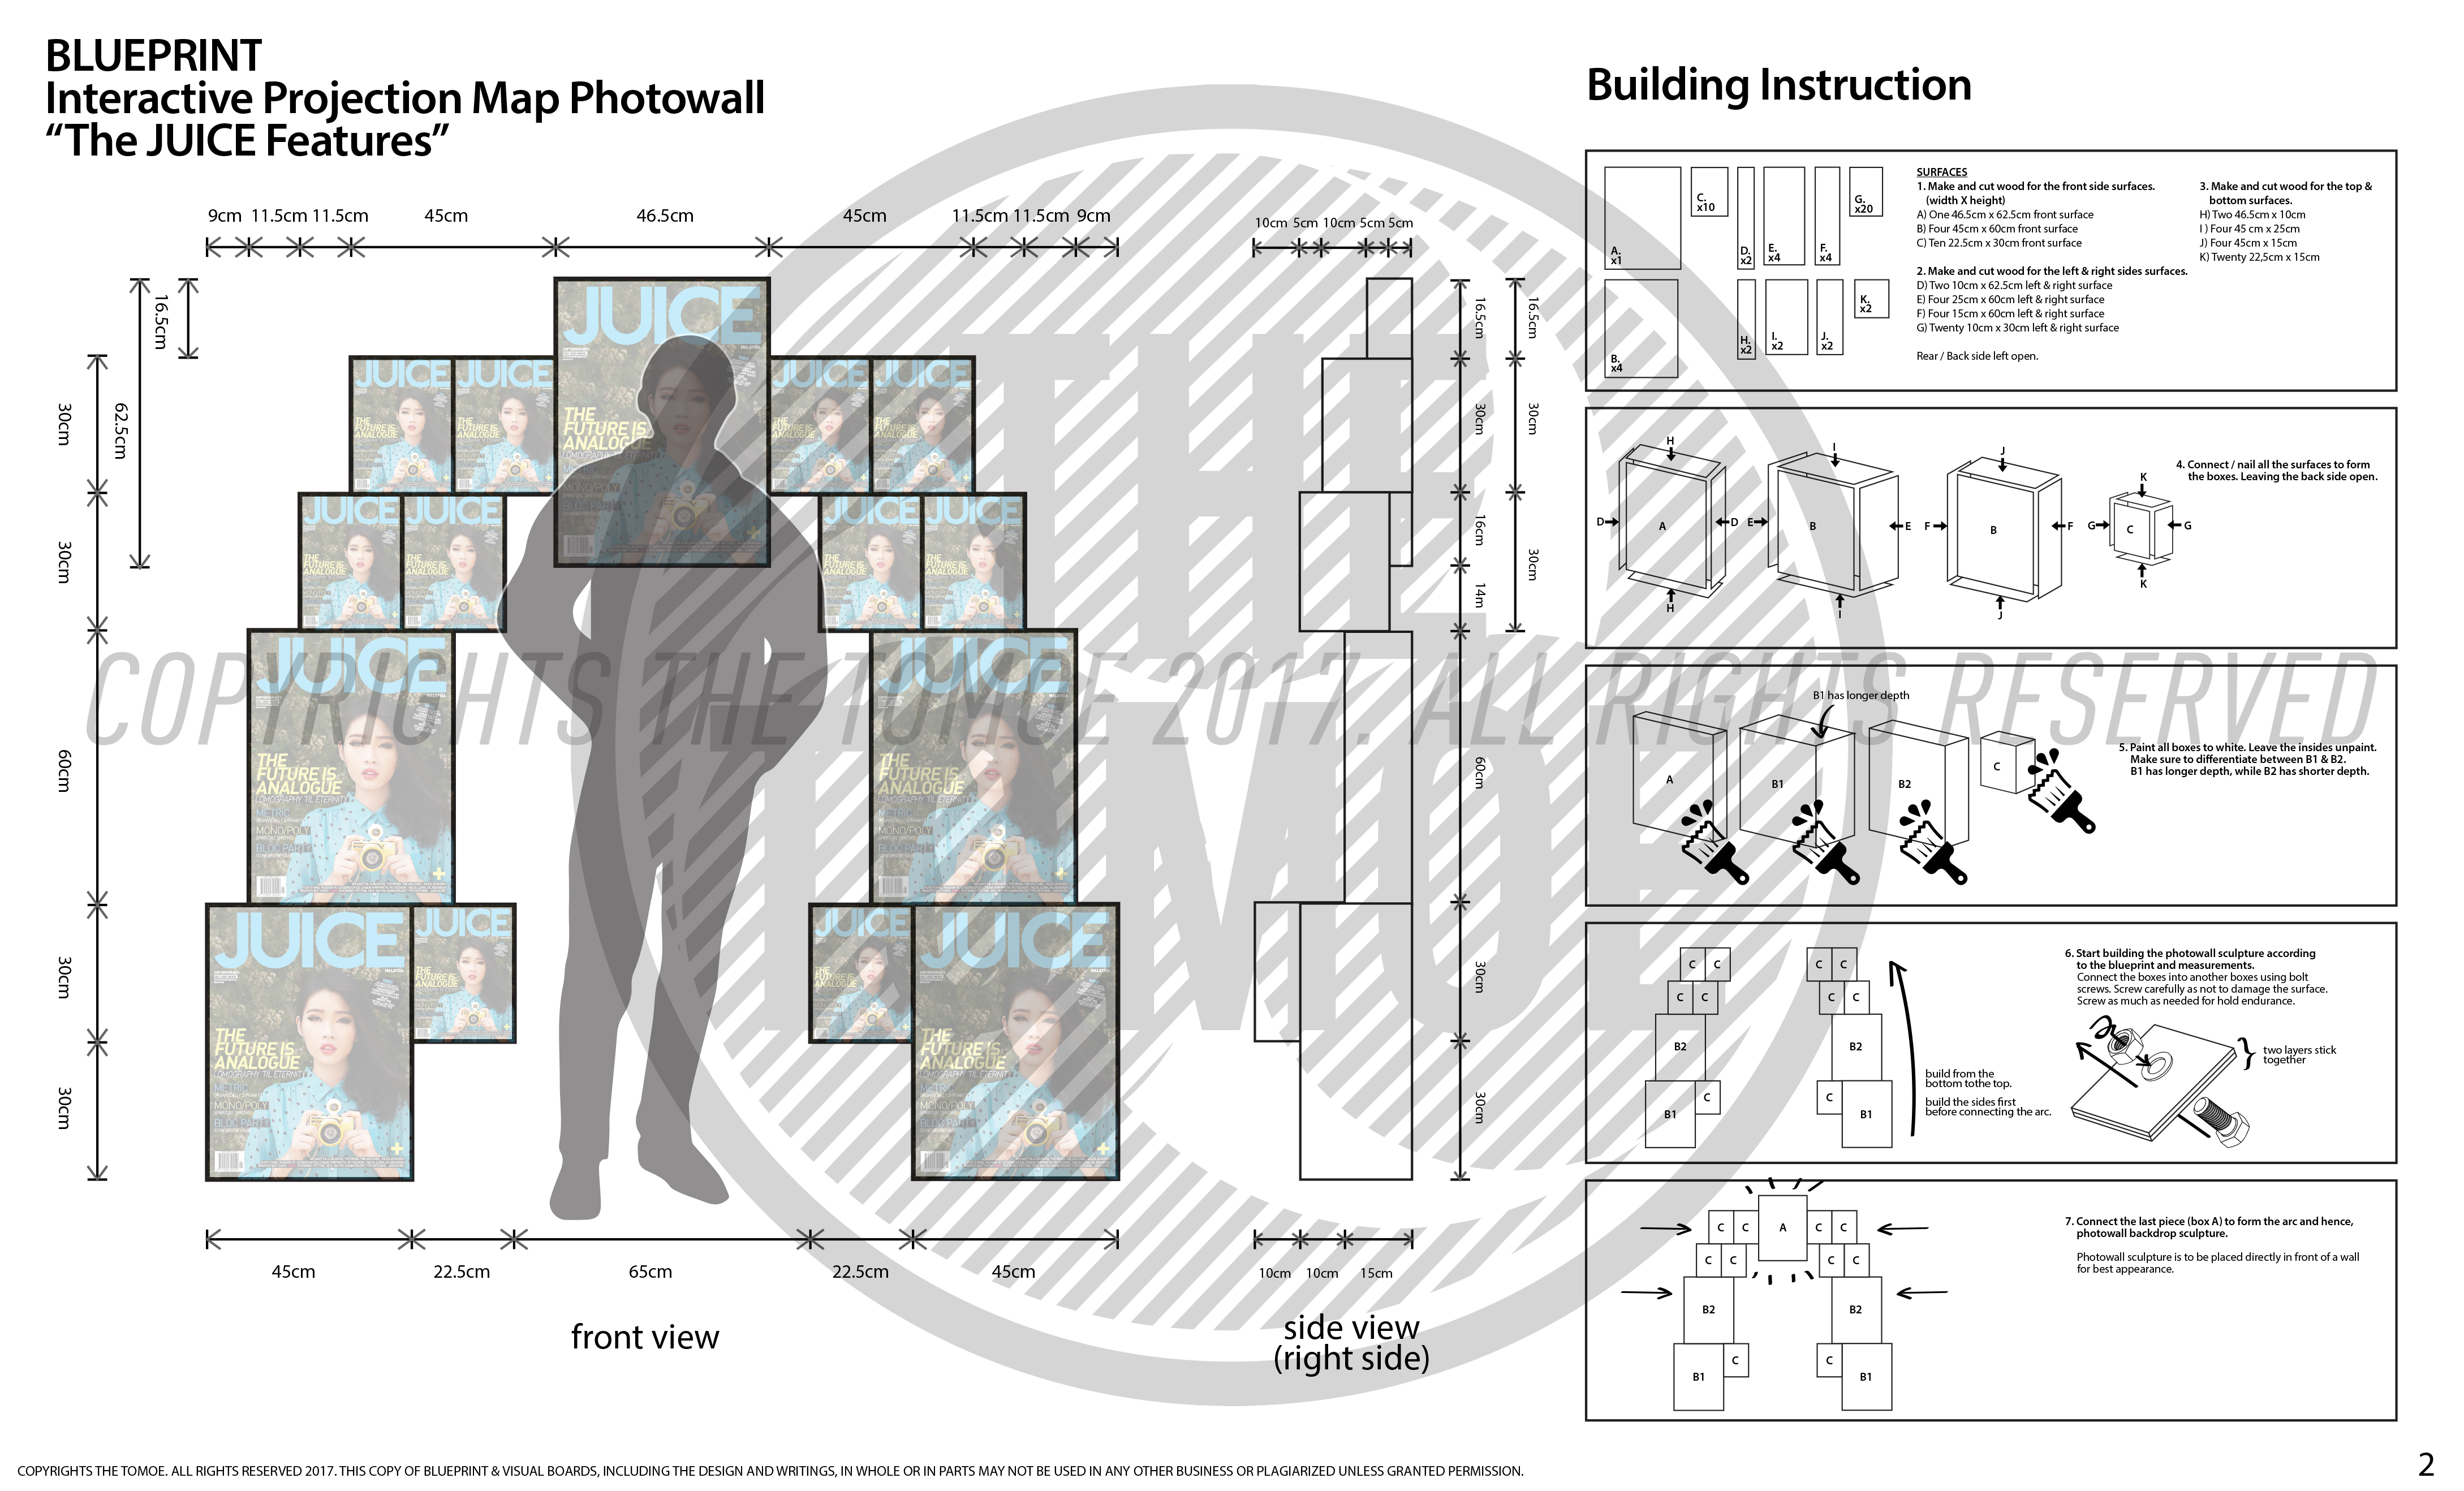 Parts of the Blueprint 2